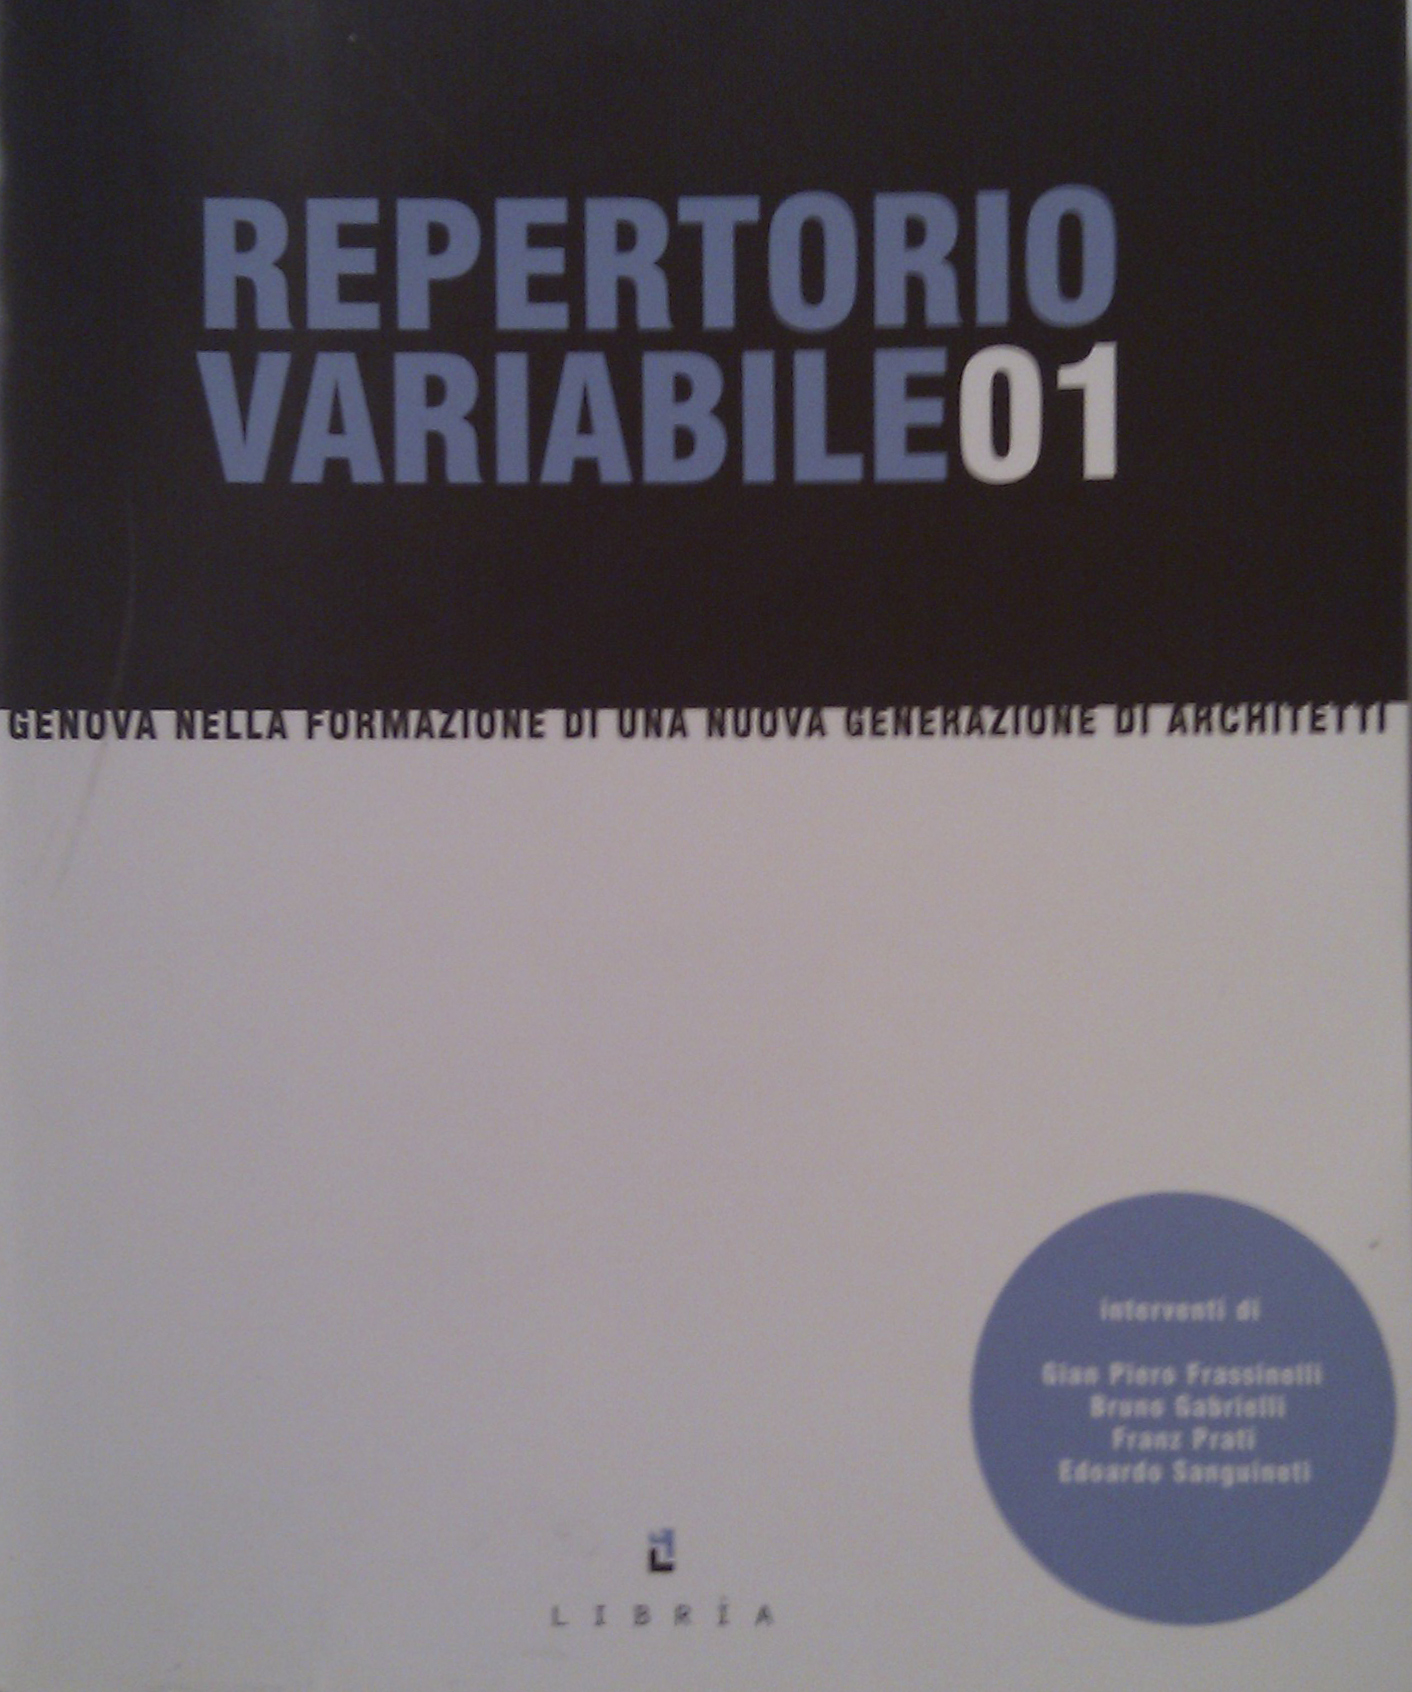 Repertorio variabile01